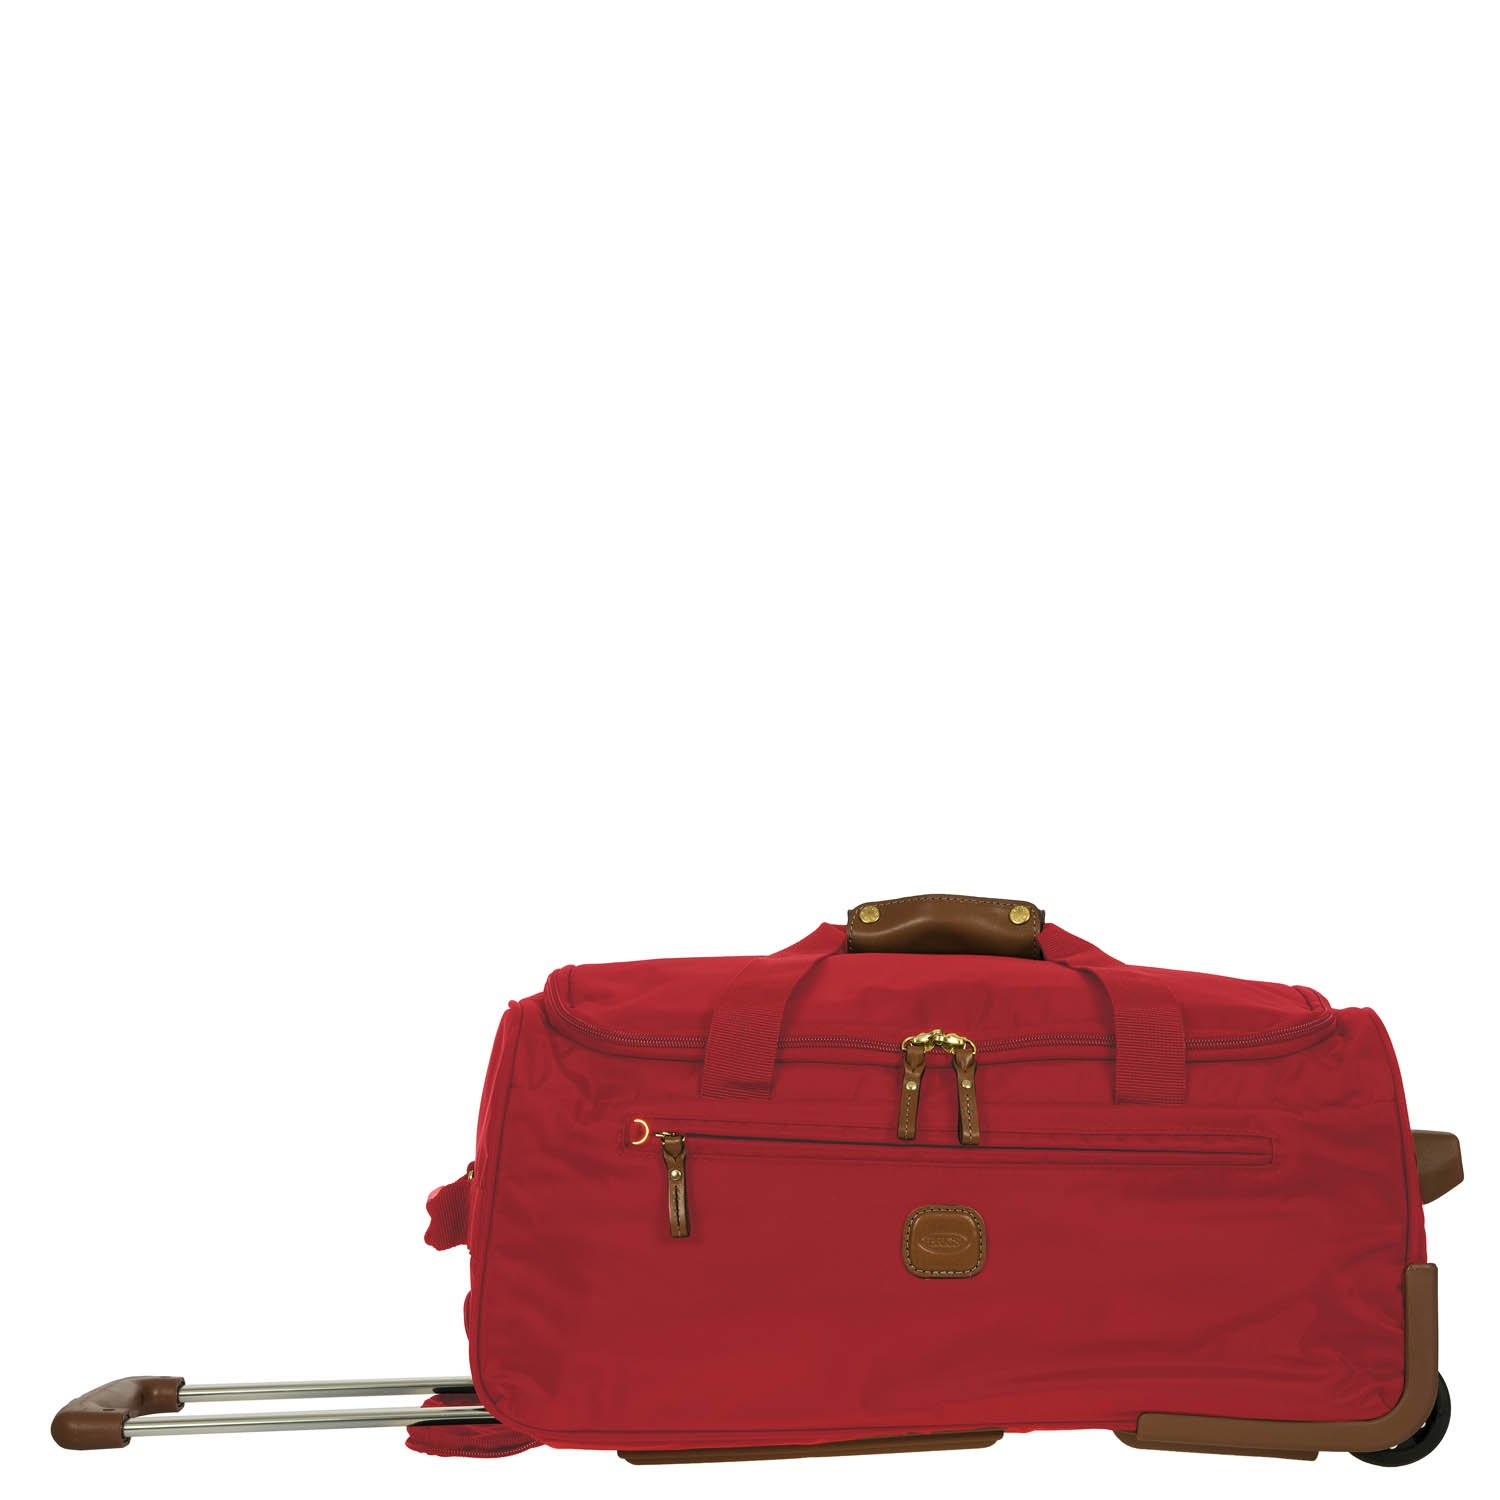 Bric's Luggage X-Bag 21-Inch Carry-On Rolling Duffel (Red)